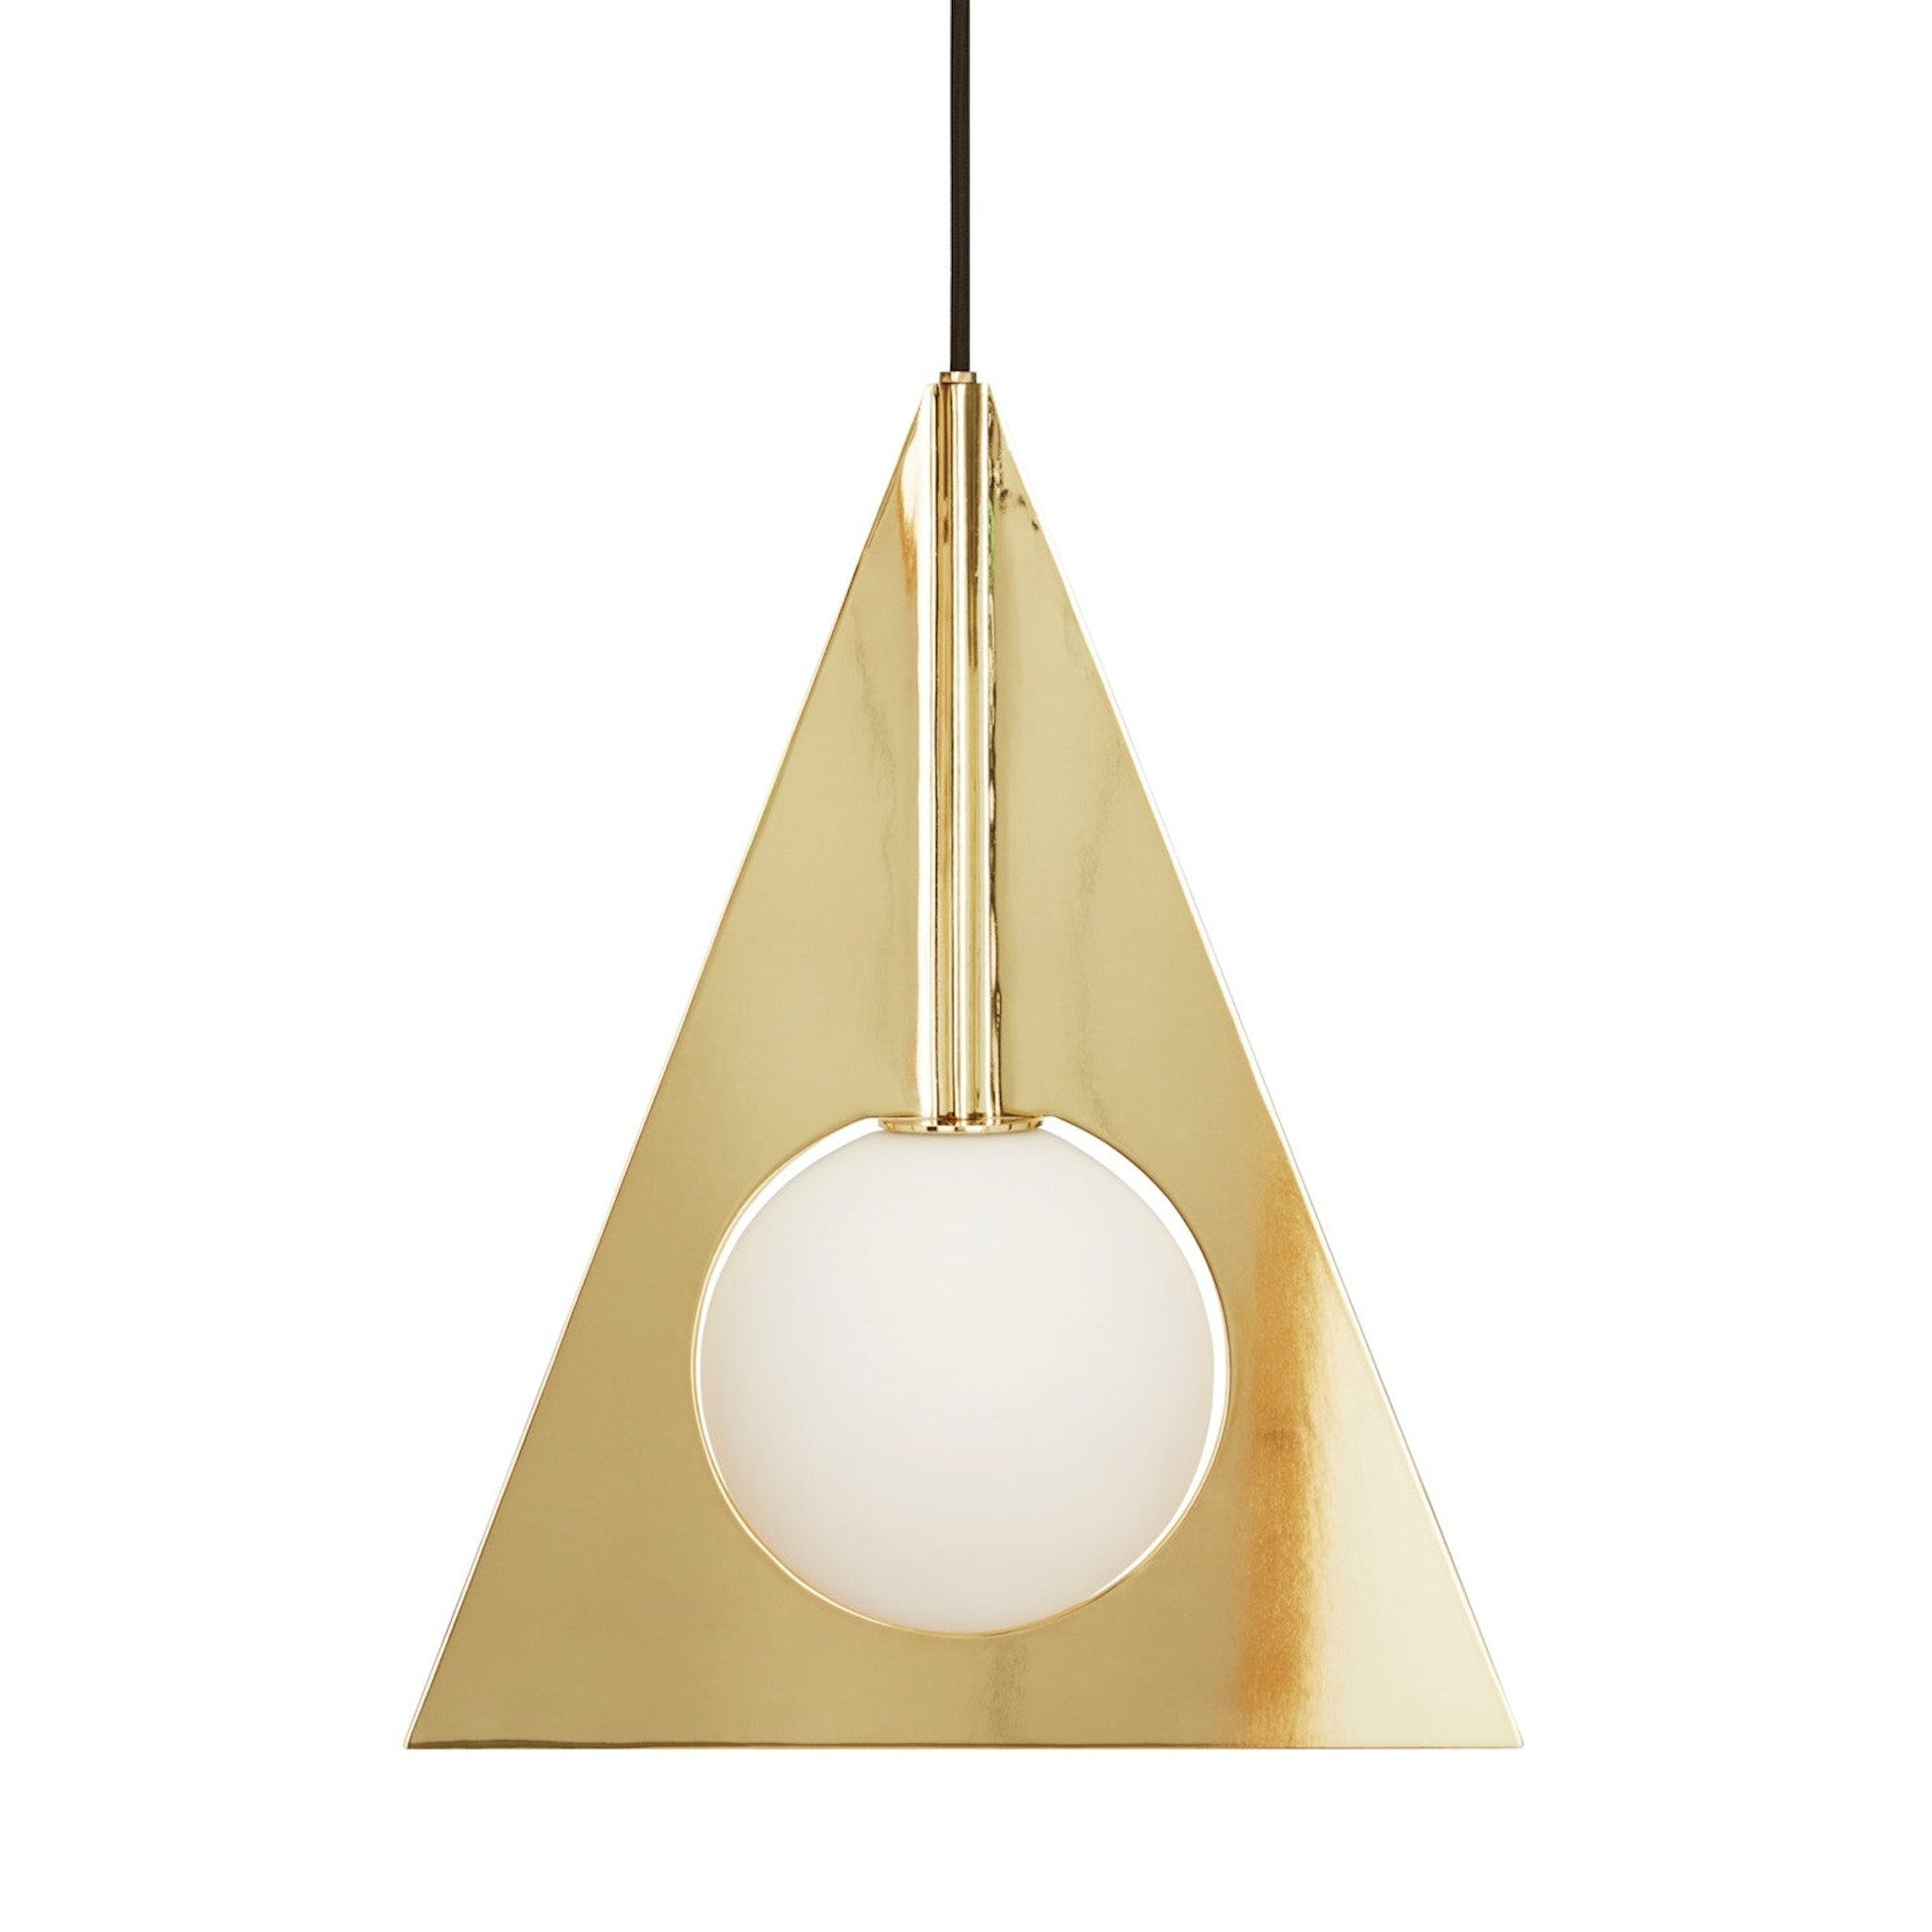 Plane Triangle Pendant by Tom Dixon